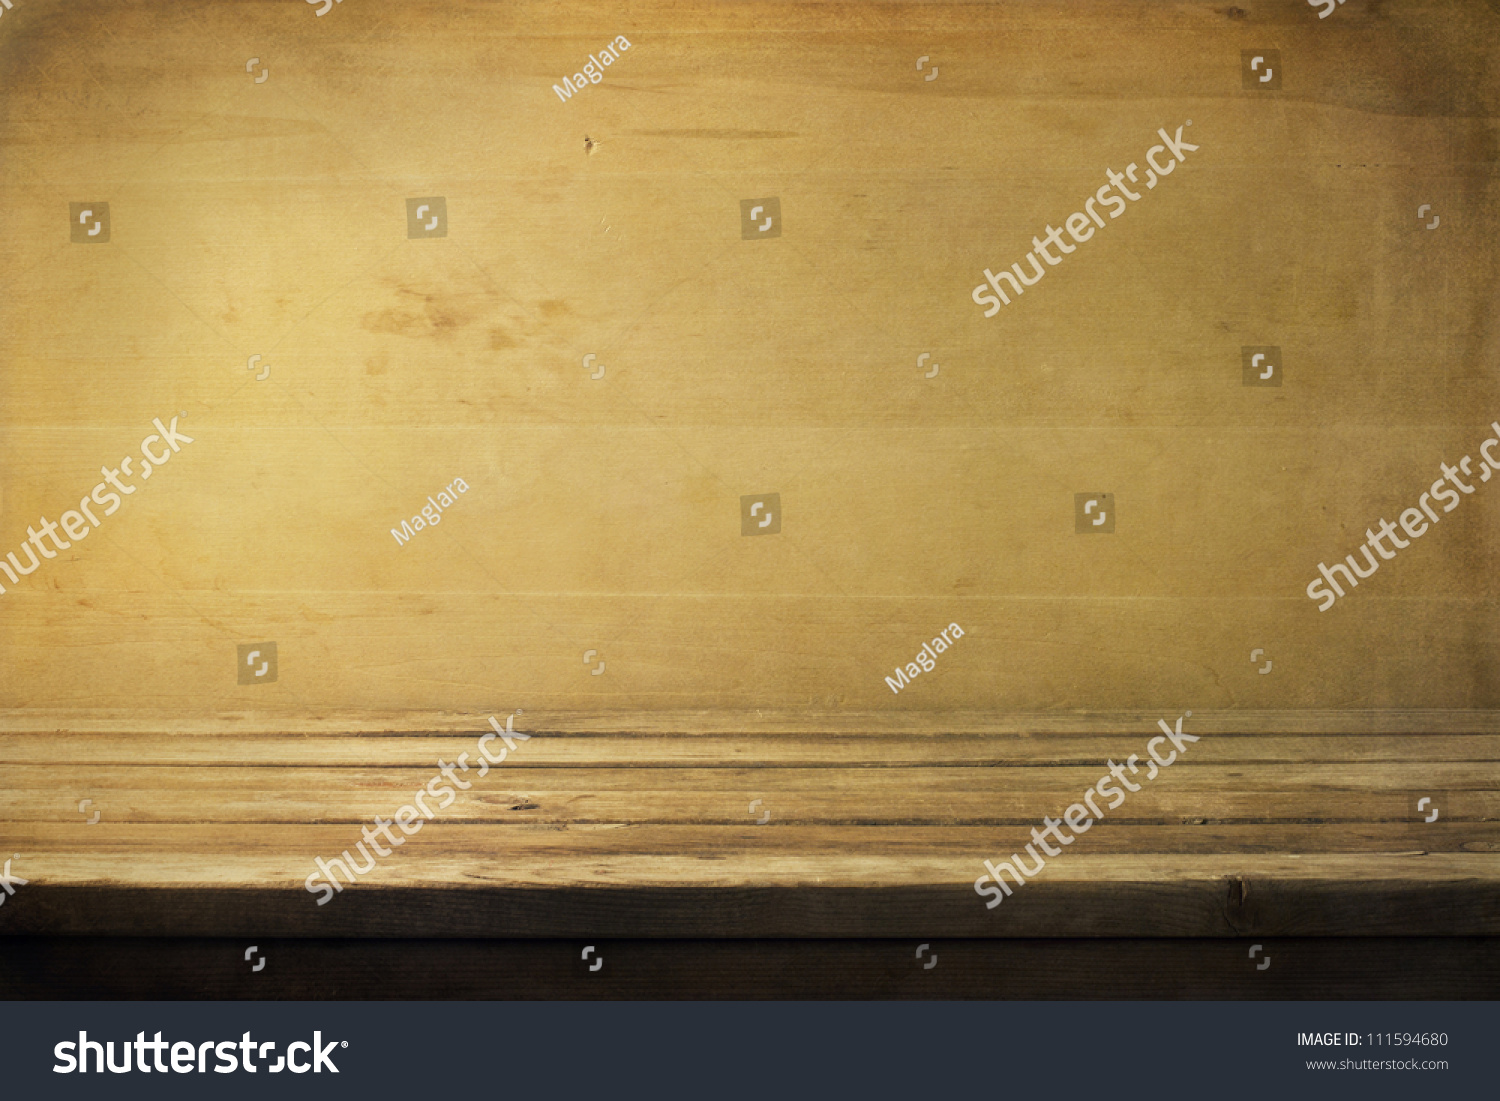 Background with wooden deck table and board stock